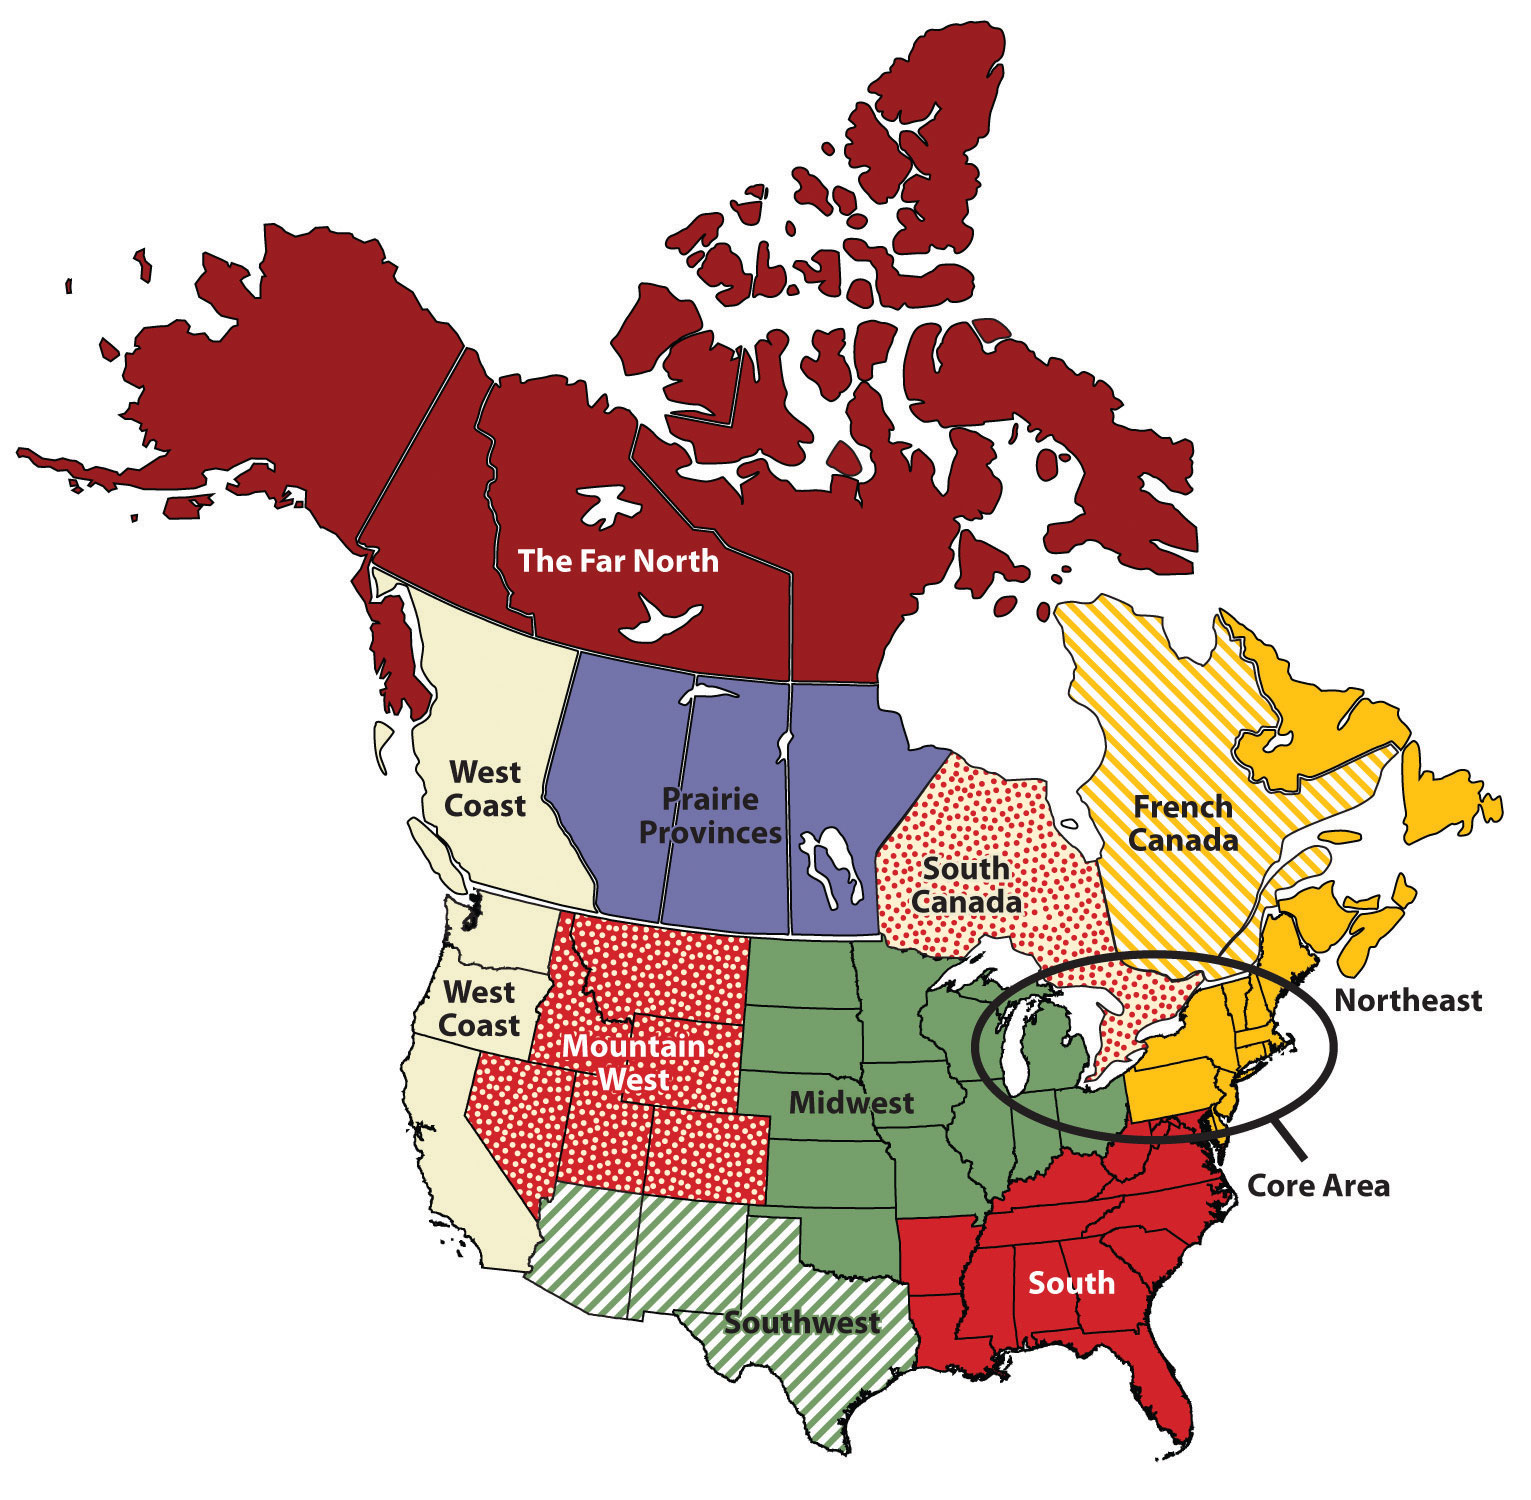 Regions Of The United States And Canada - Map of midwest states